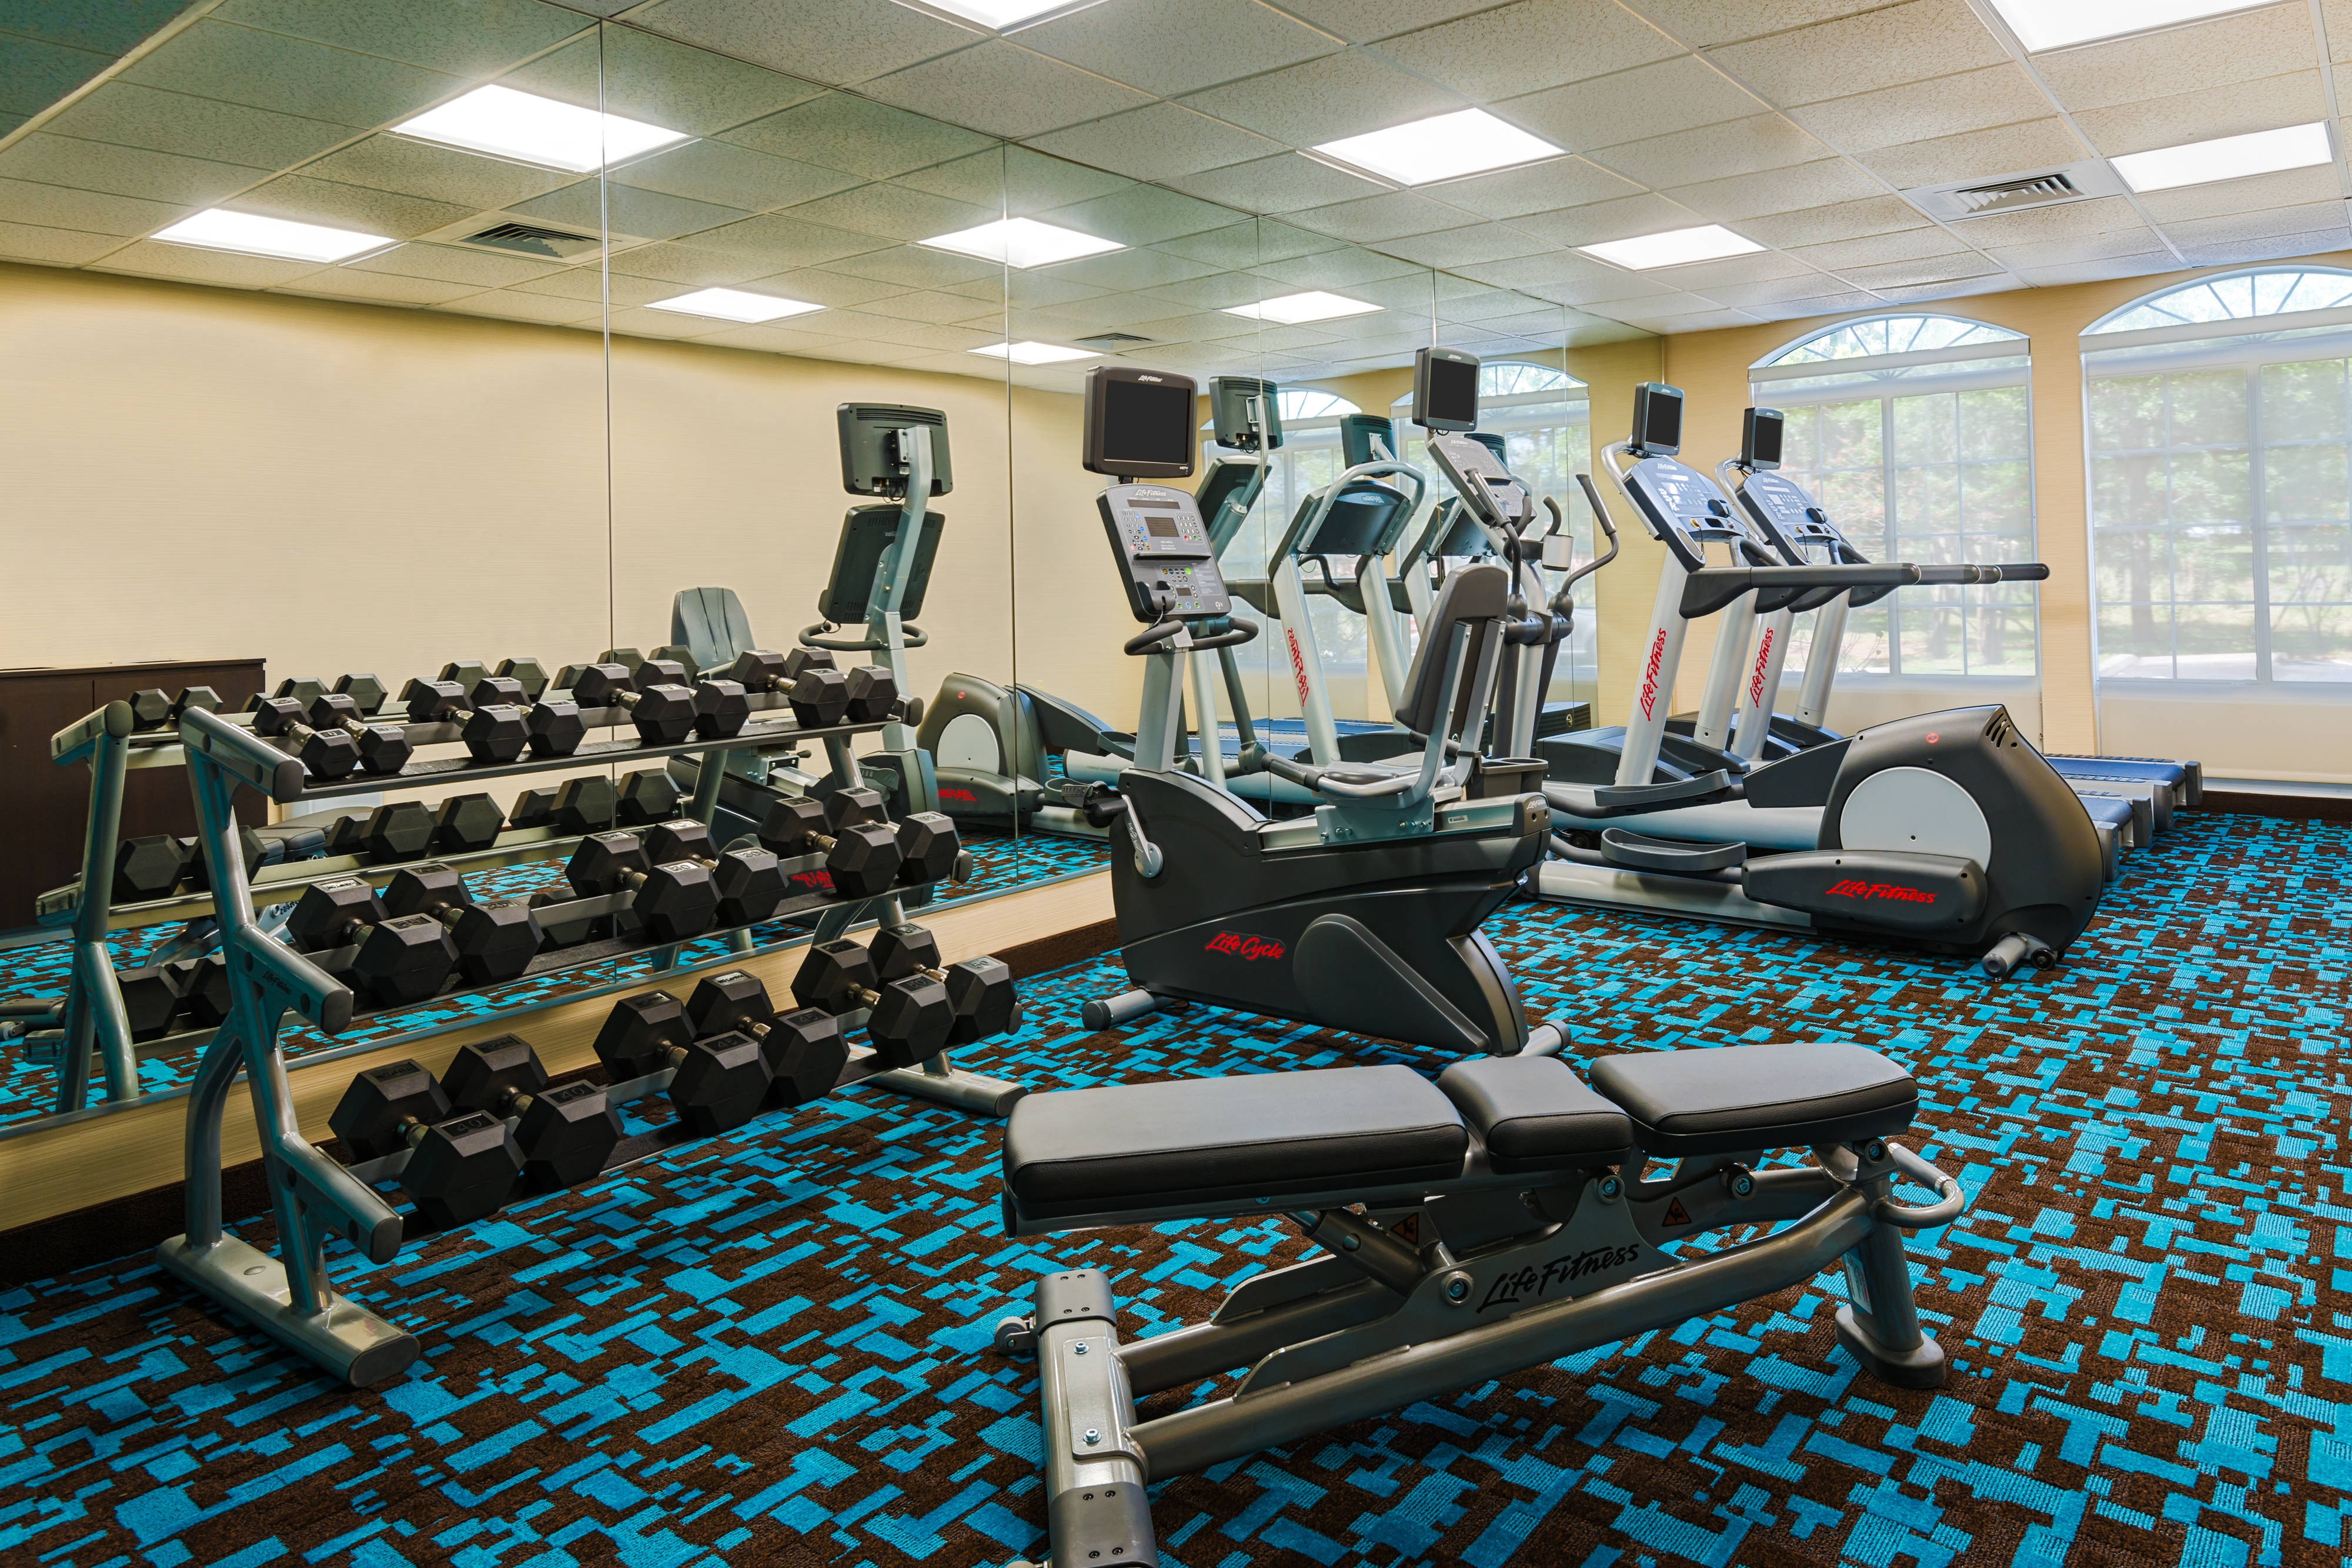 Fairfield Inn & Suites Clearwater fitness center